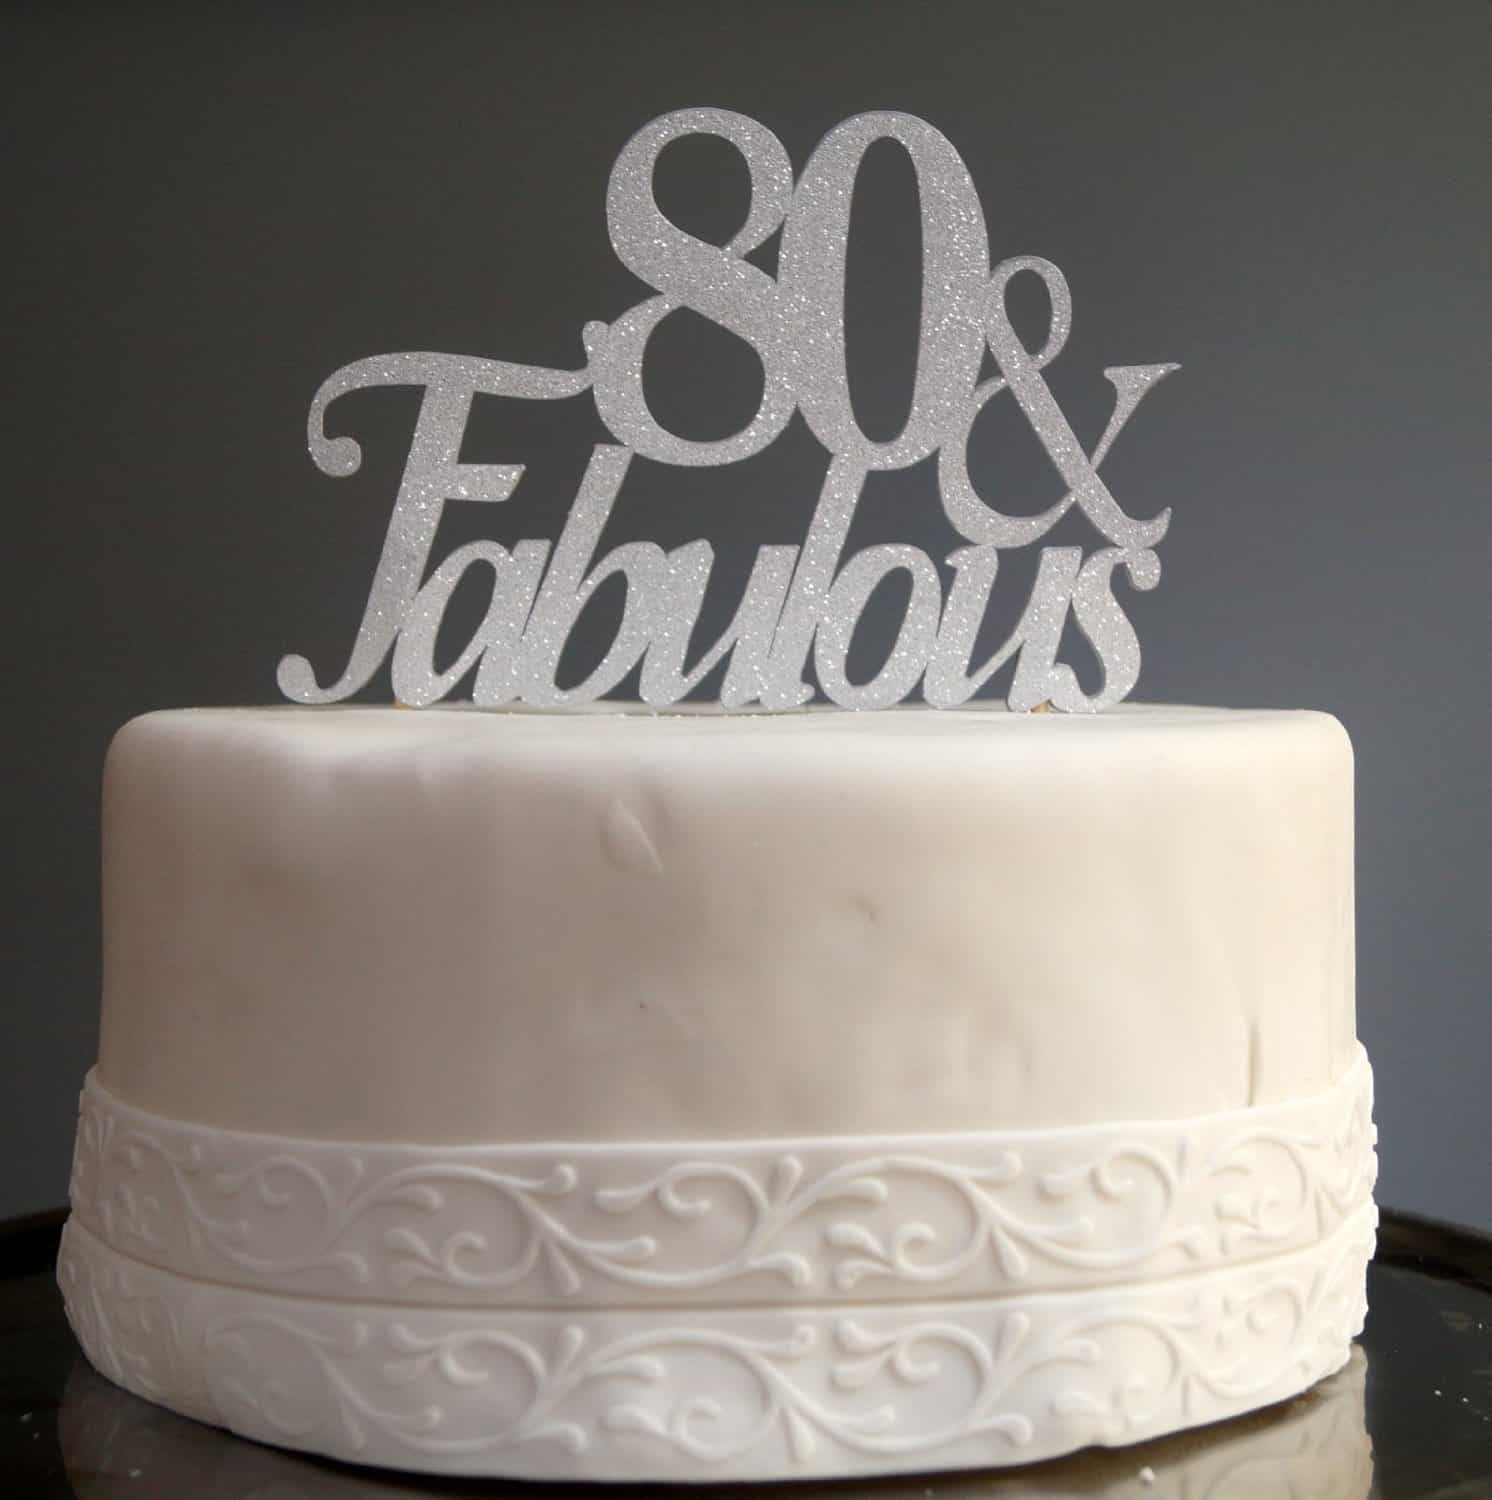 Ideas For Birthday Cake Toppers : 80th Birthday Cakes - 80th Birthday Ideas